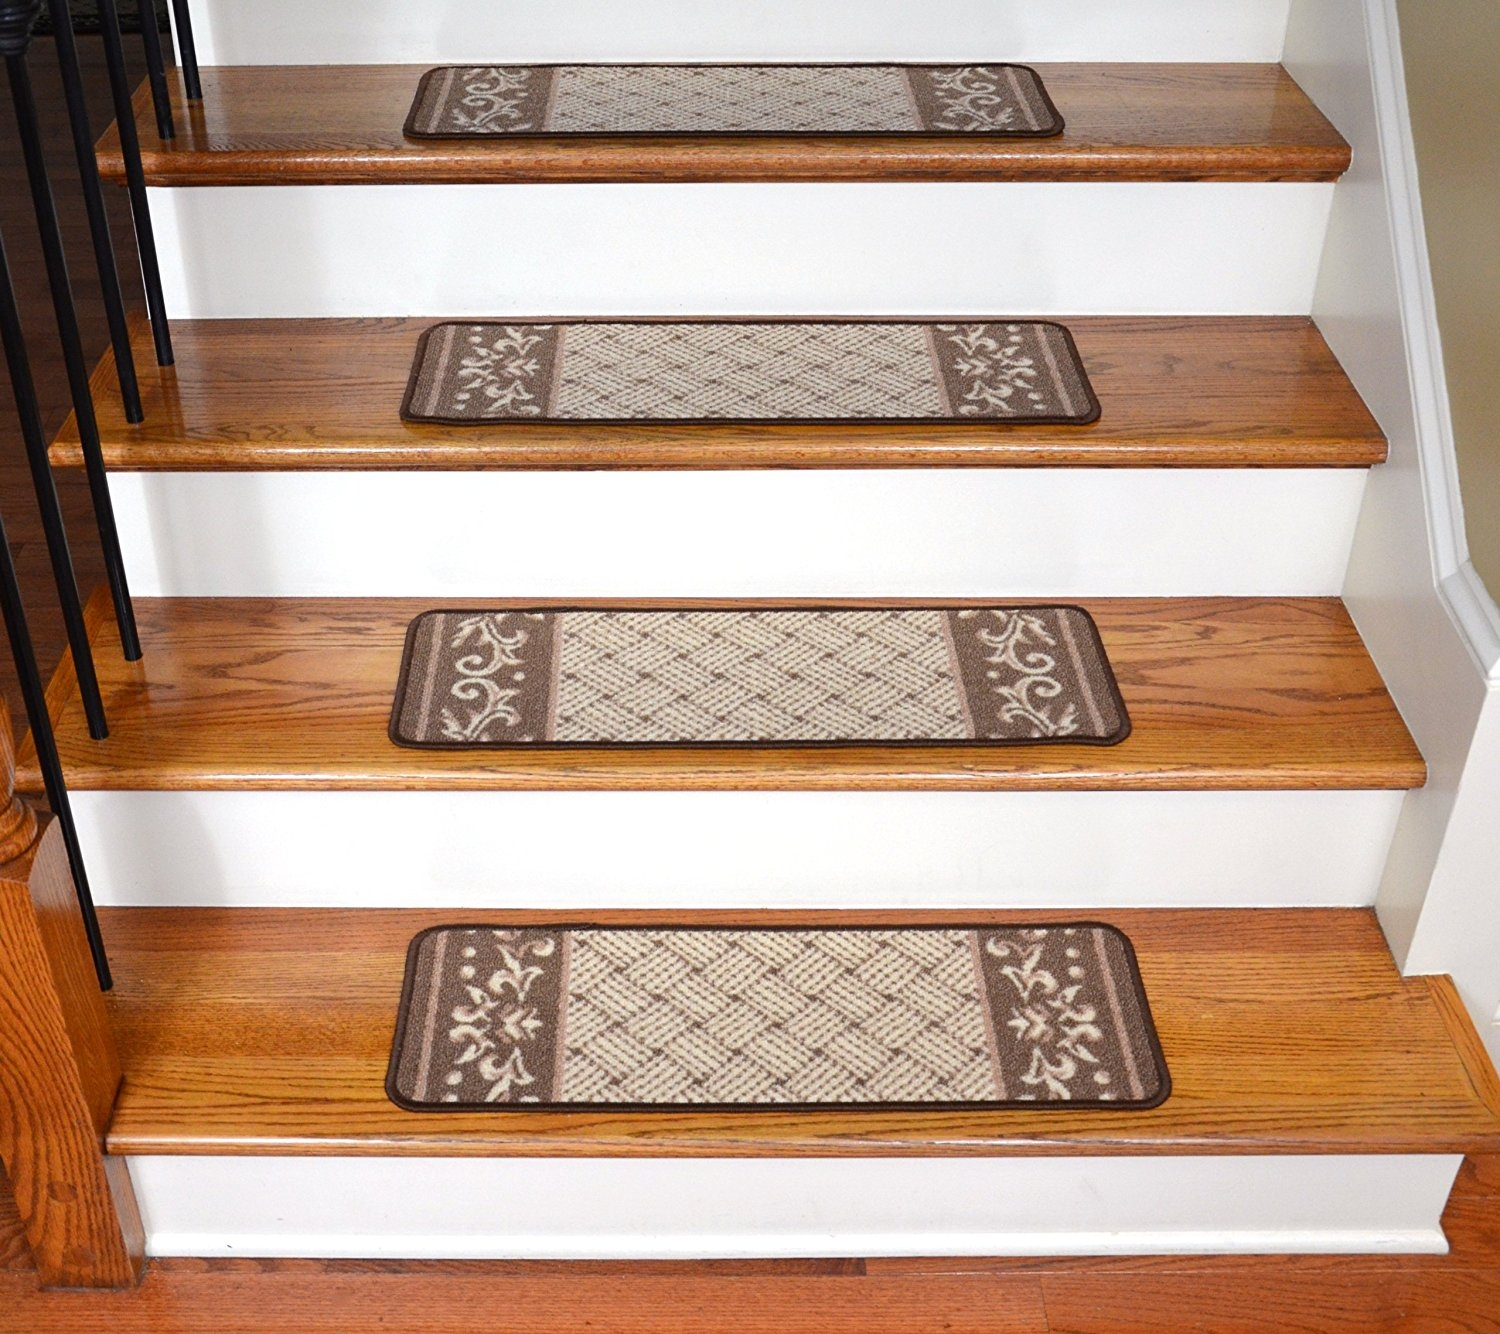 Amazon Carpet Stair Treads Caramel Scroll Border Regarding Peel And Stick Carpet Stair Treads (Image 2 of 15)